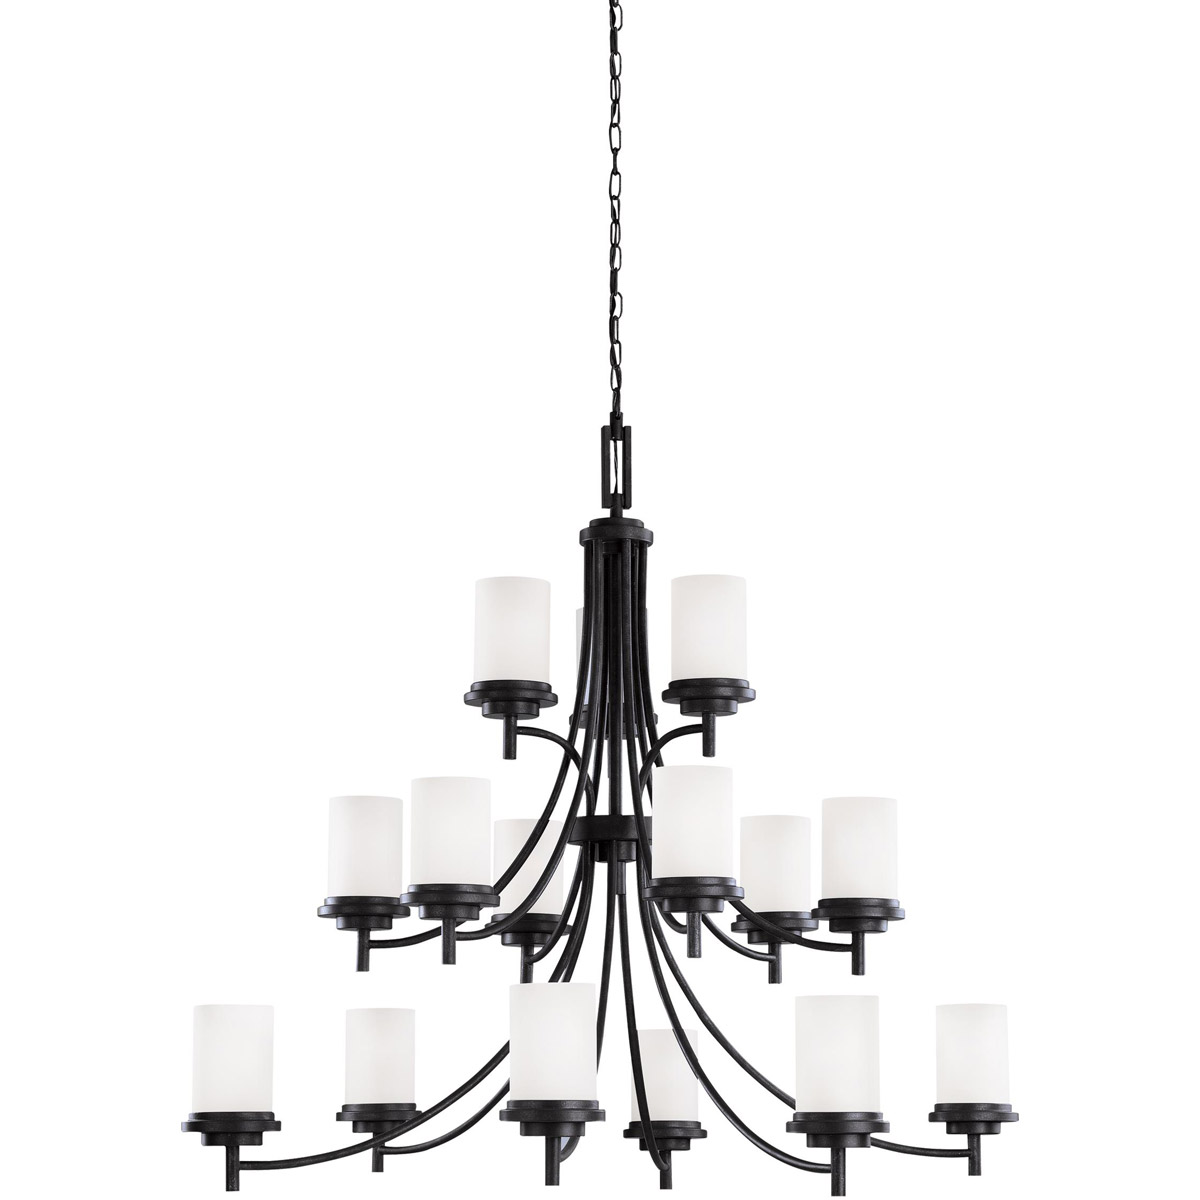 Sea Gull Lighting Winnetka 15 Light Chandelier in Blacksmith 31663-839